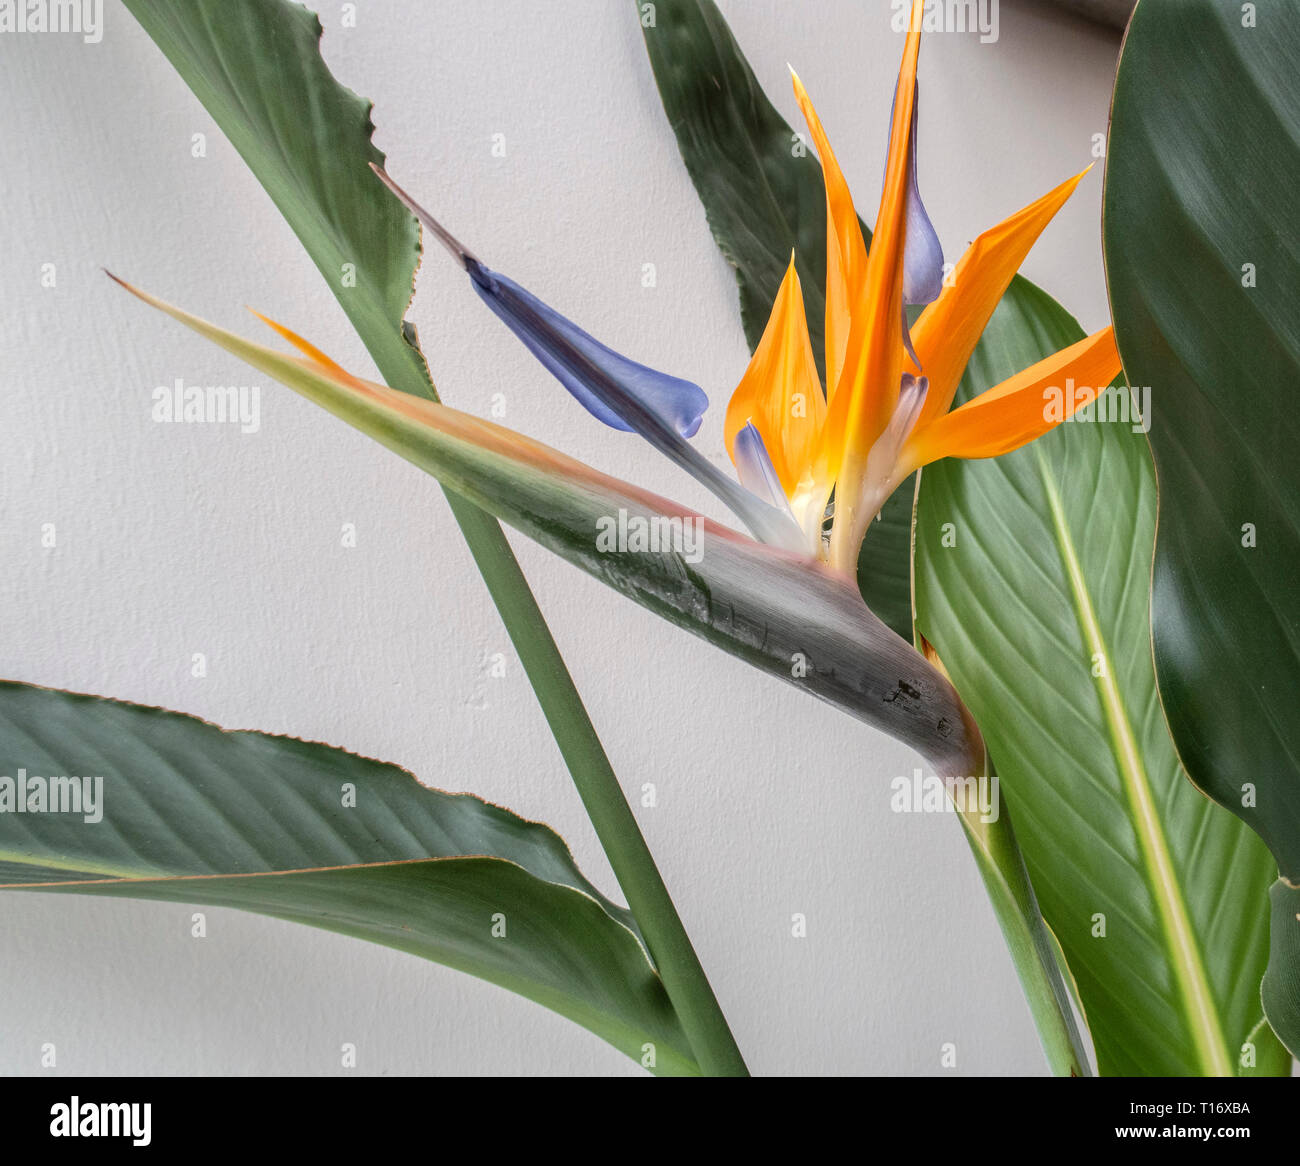 Strelitzia indoor plant in flower - bird of paradise flower. Stock Photo